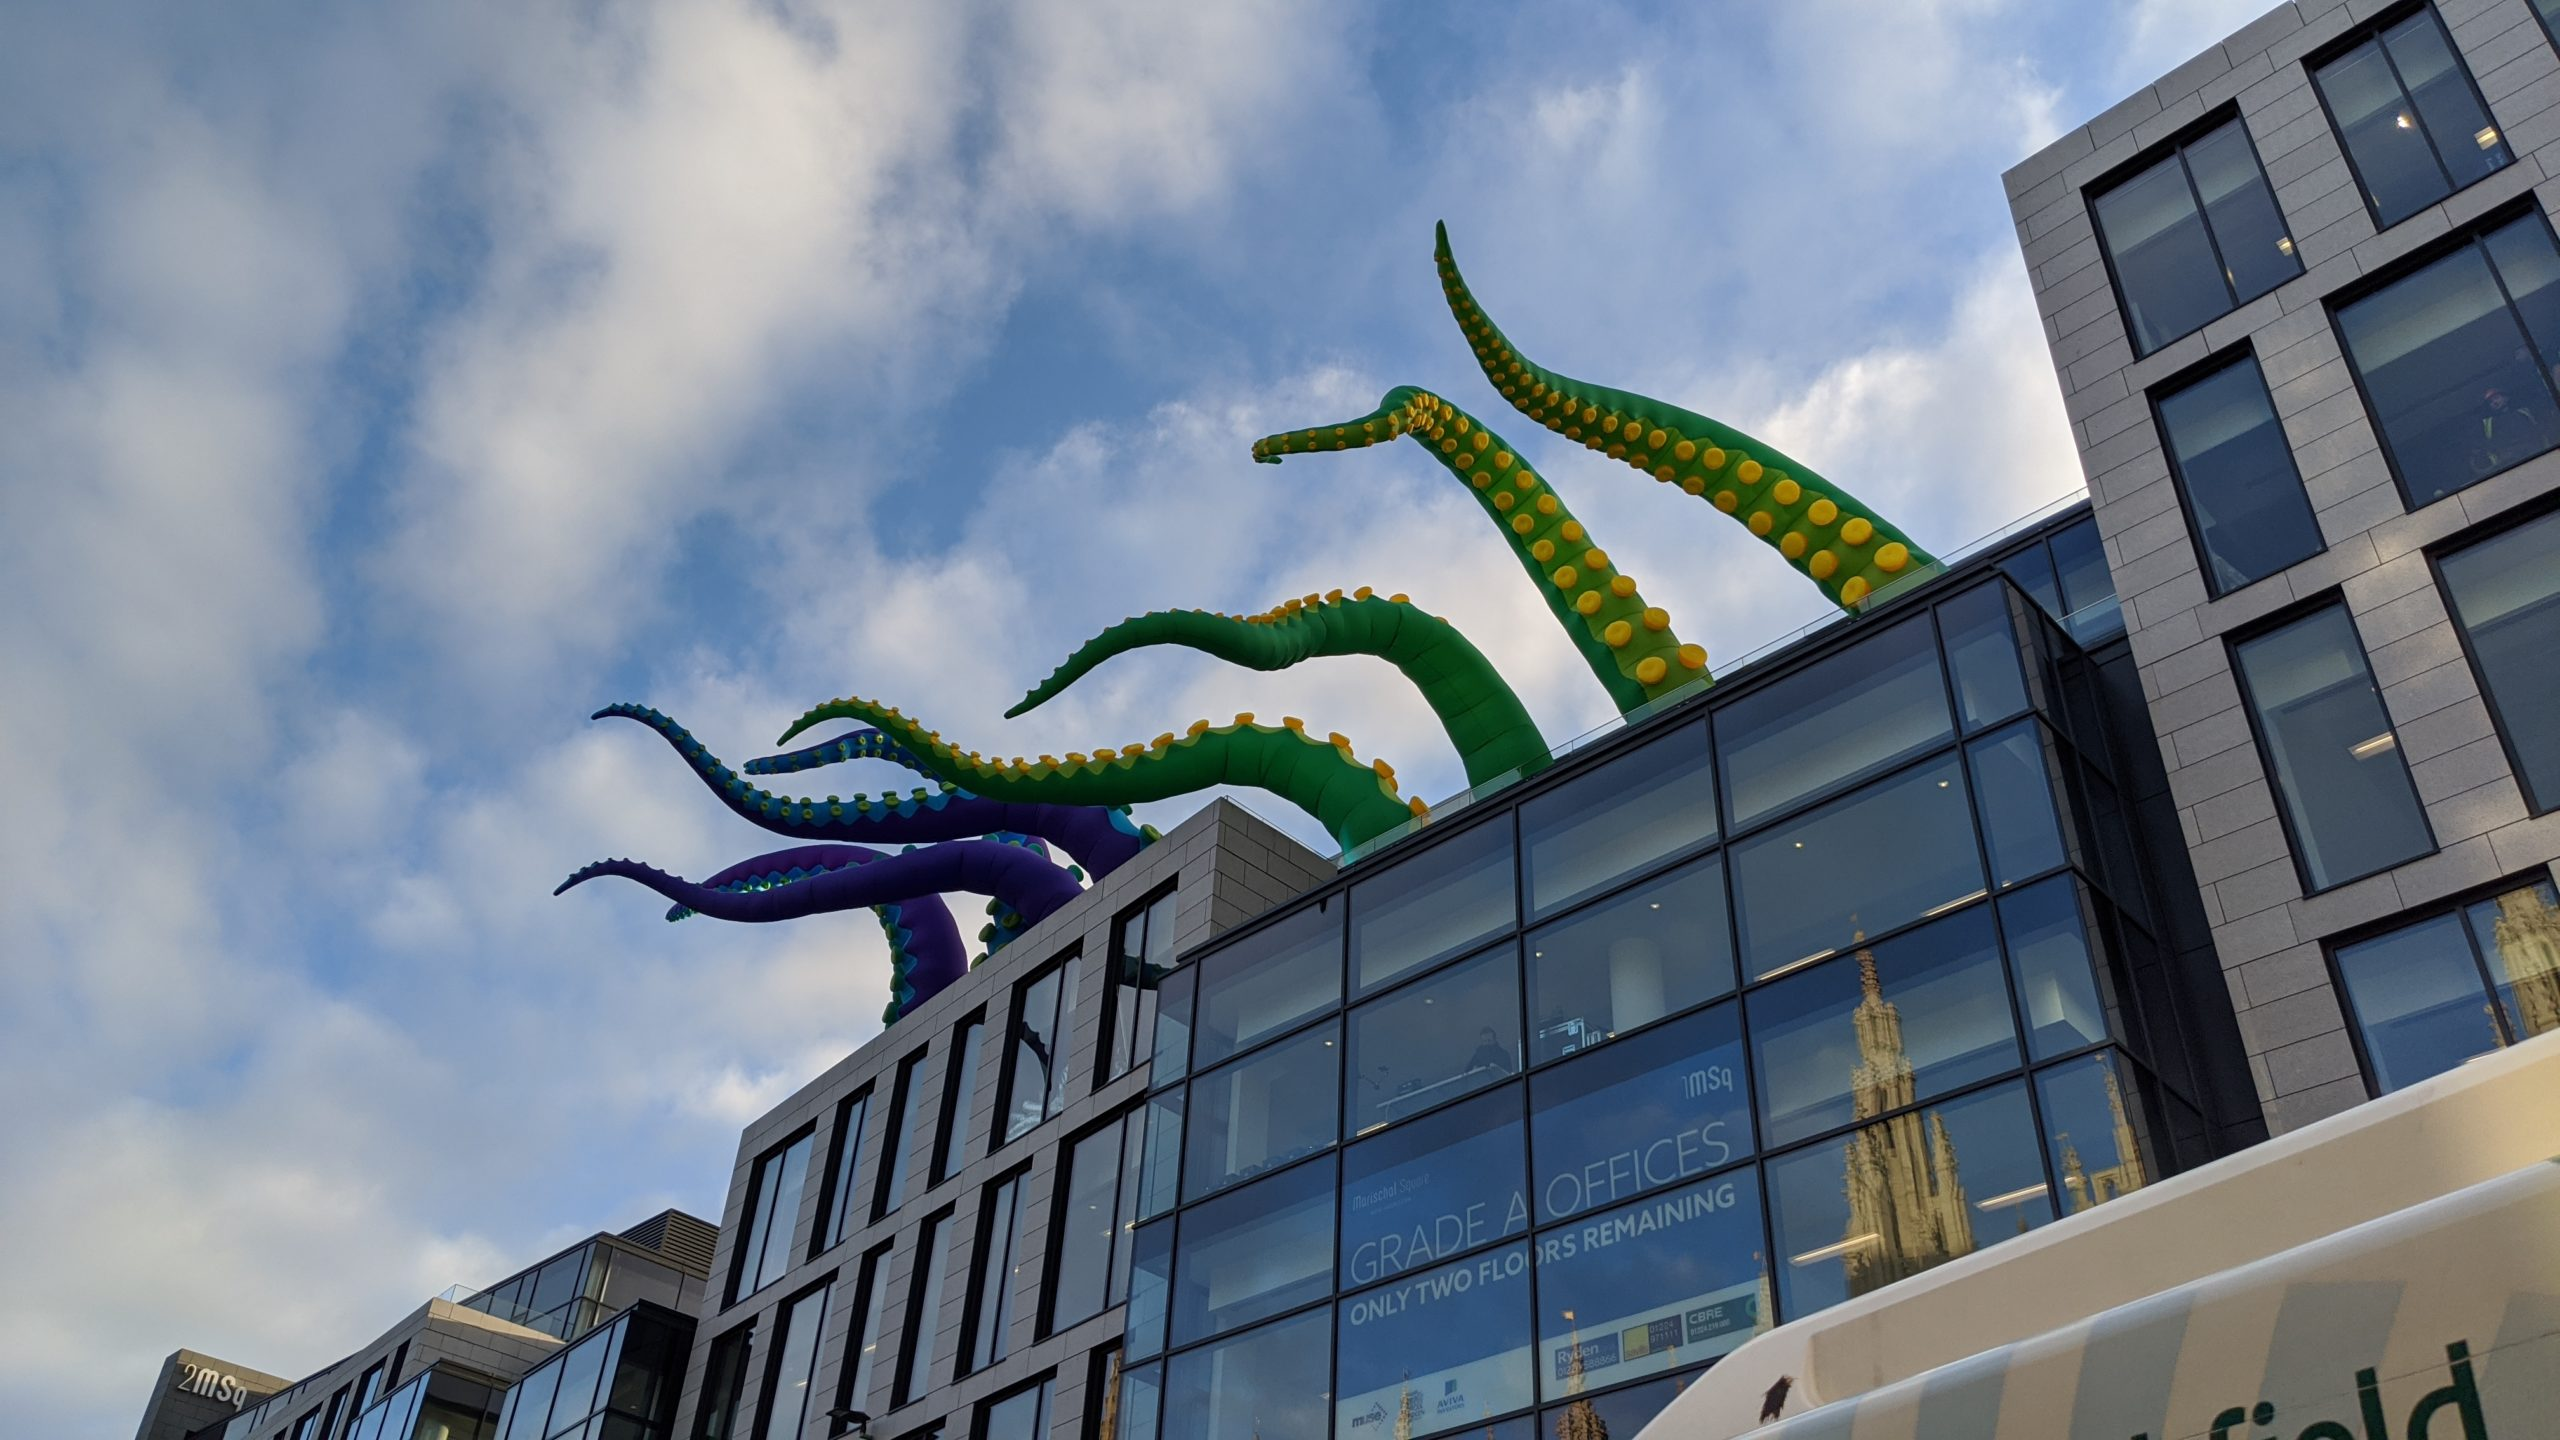 Massive tentacles were spotted coming out of Marischal Square